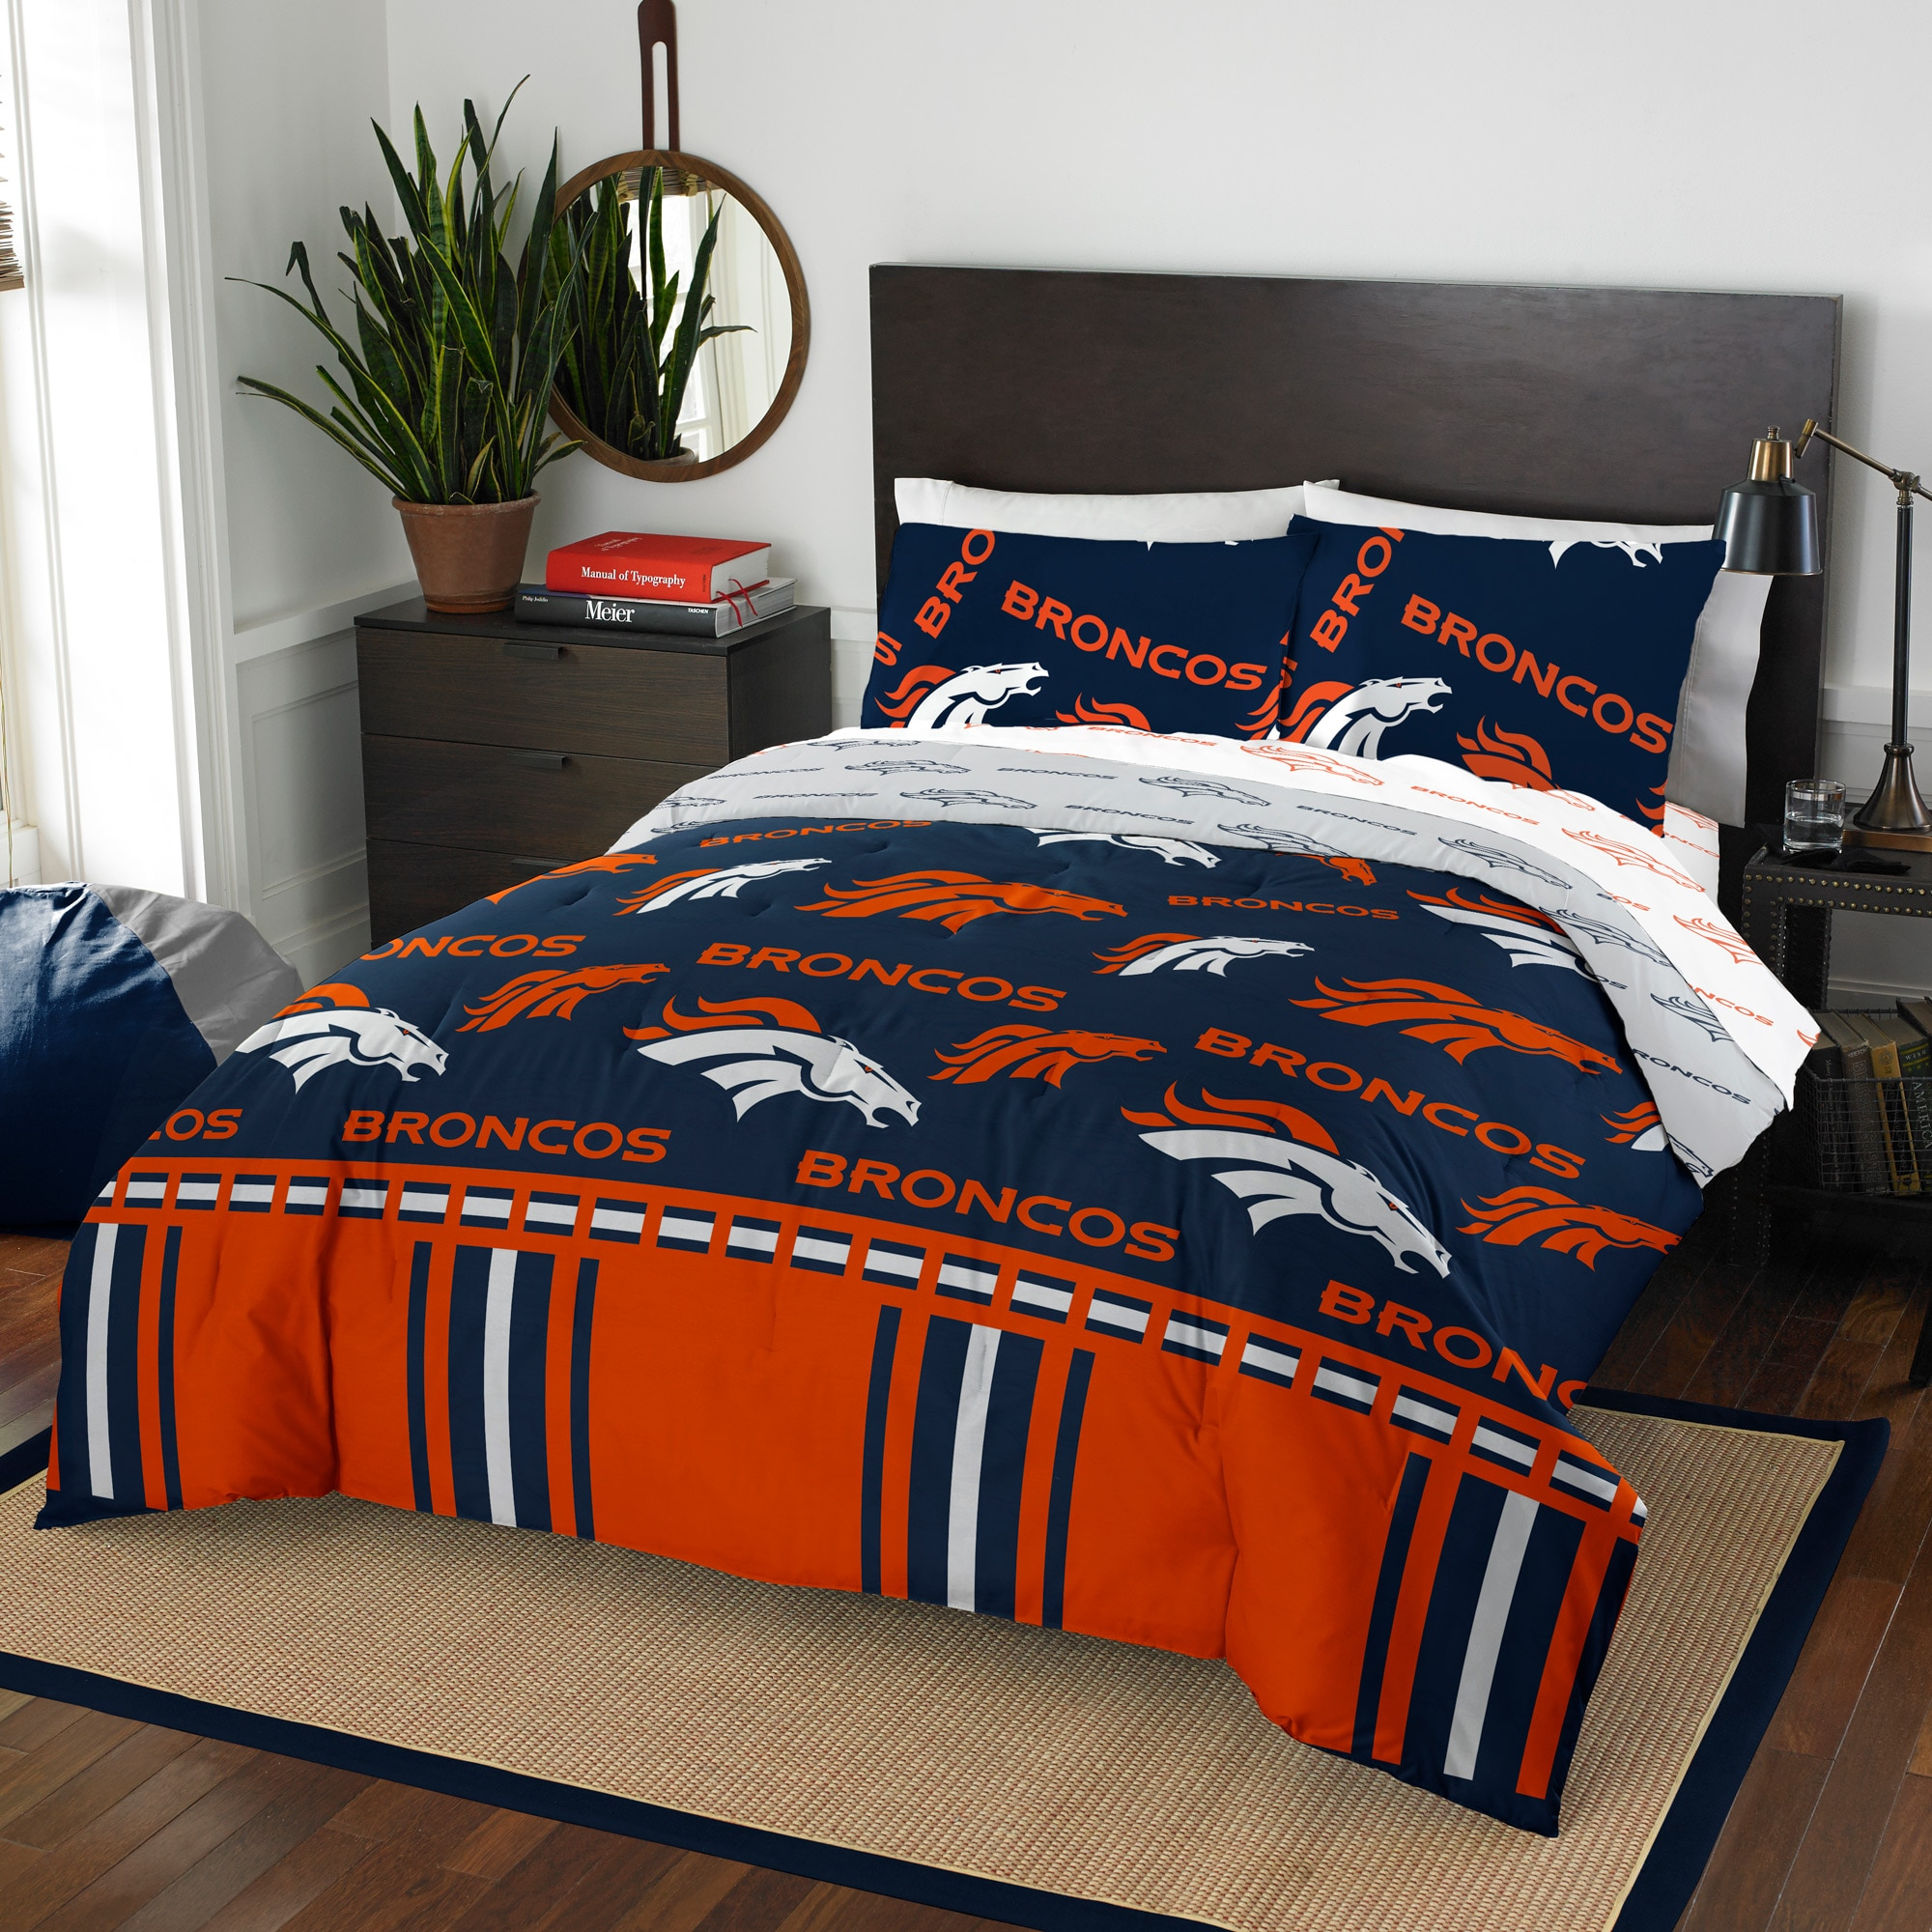 Denver Broncos The Northwest Company 5-Piece Queen Bed in a Bag Set